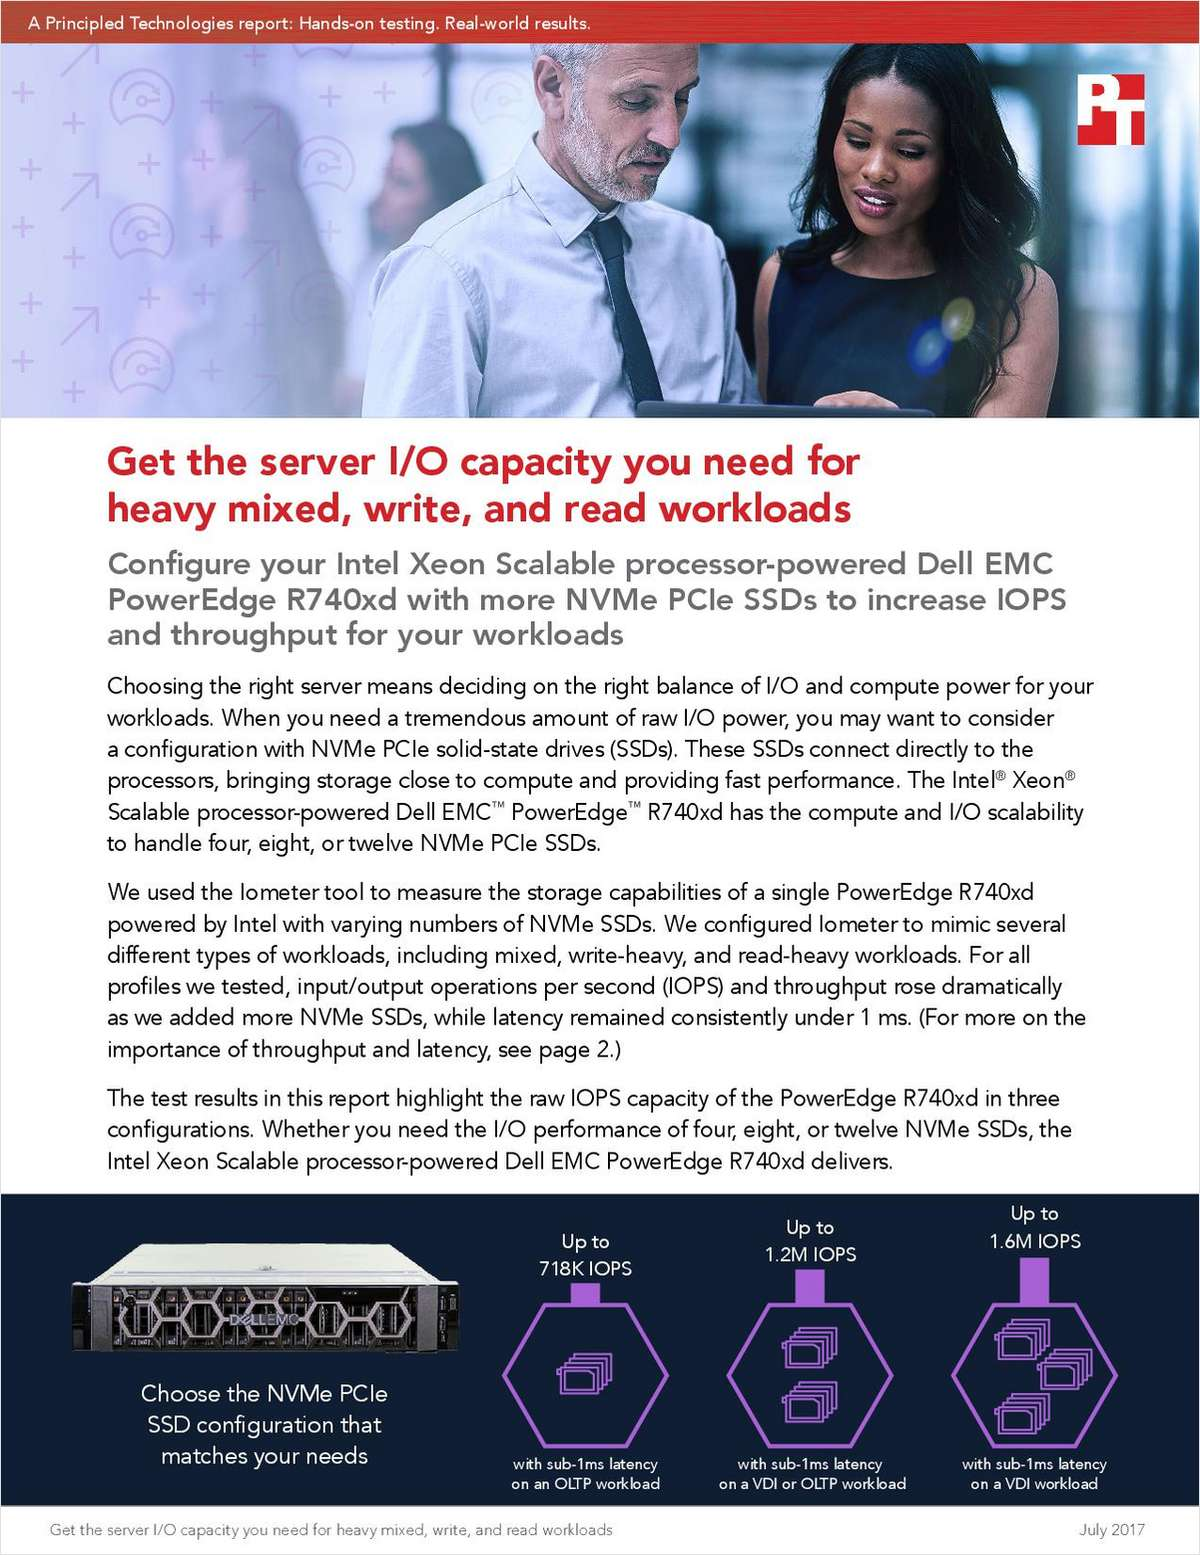 Get the Server I/O Capacity You Need for Heavy Mixed, Write and Read Workloads